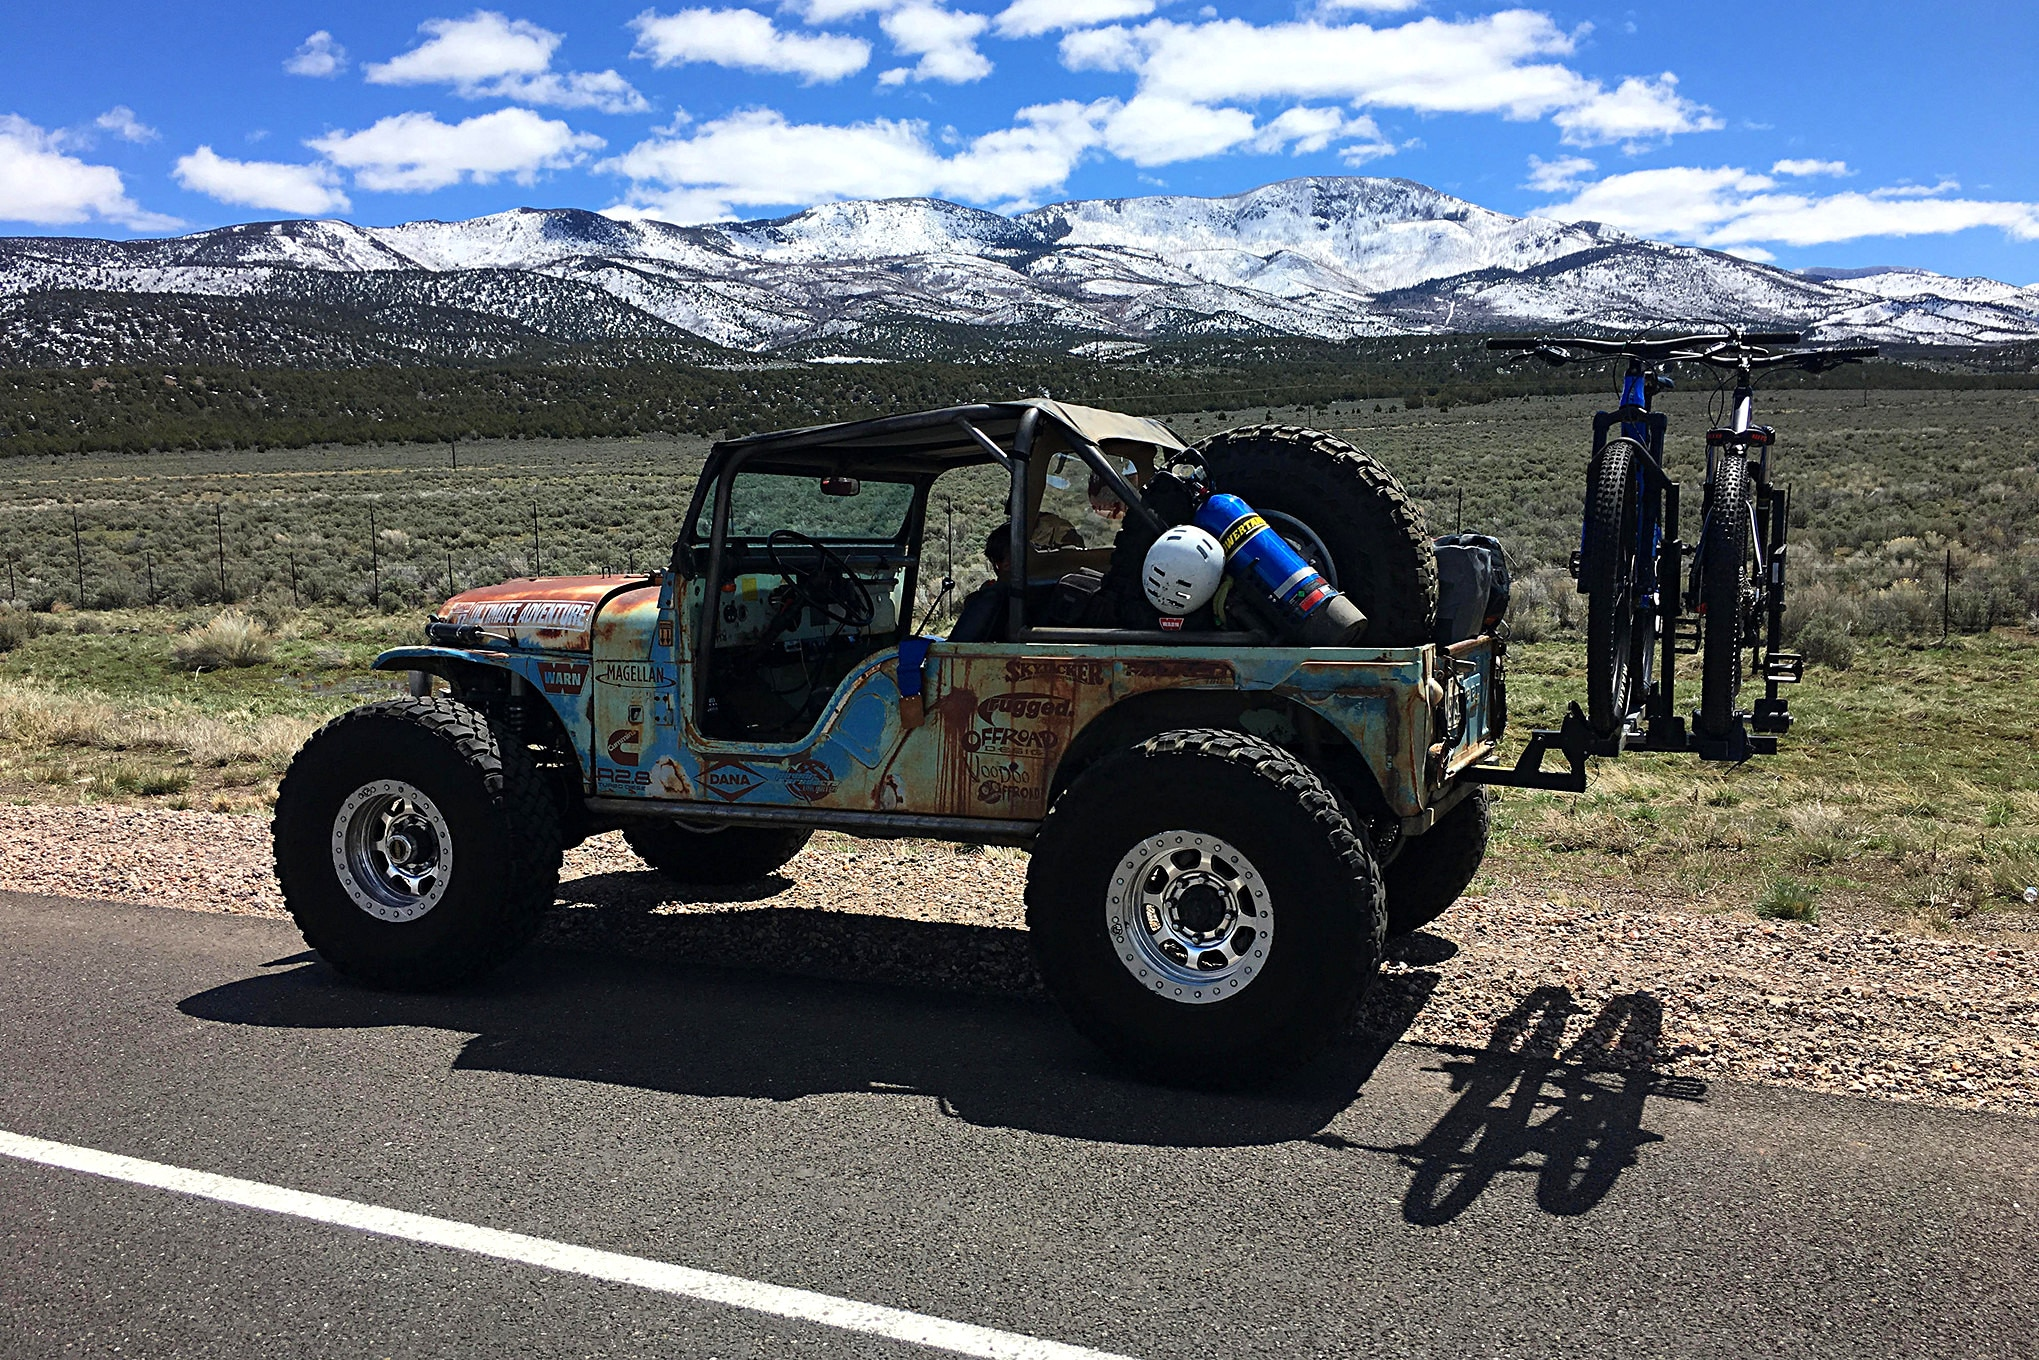 christian and caelin hazel drive the uacj6d 800 miles to moab ejs2019 lead